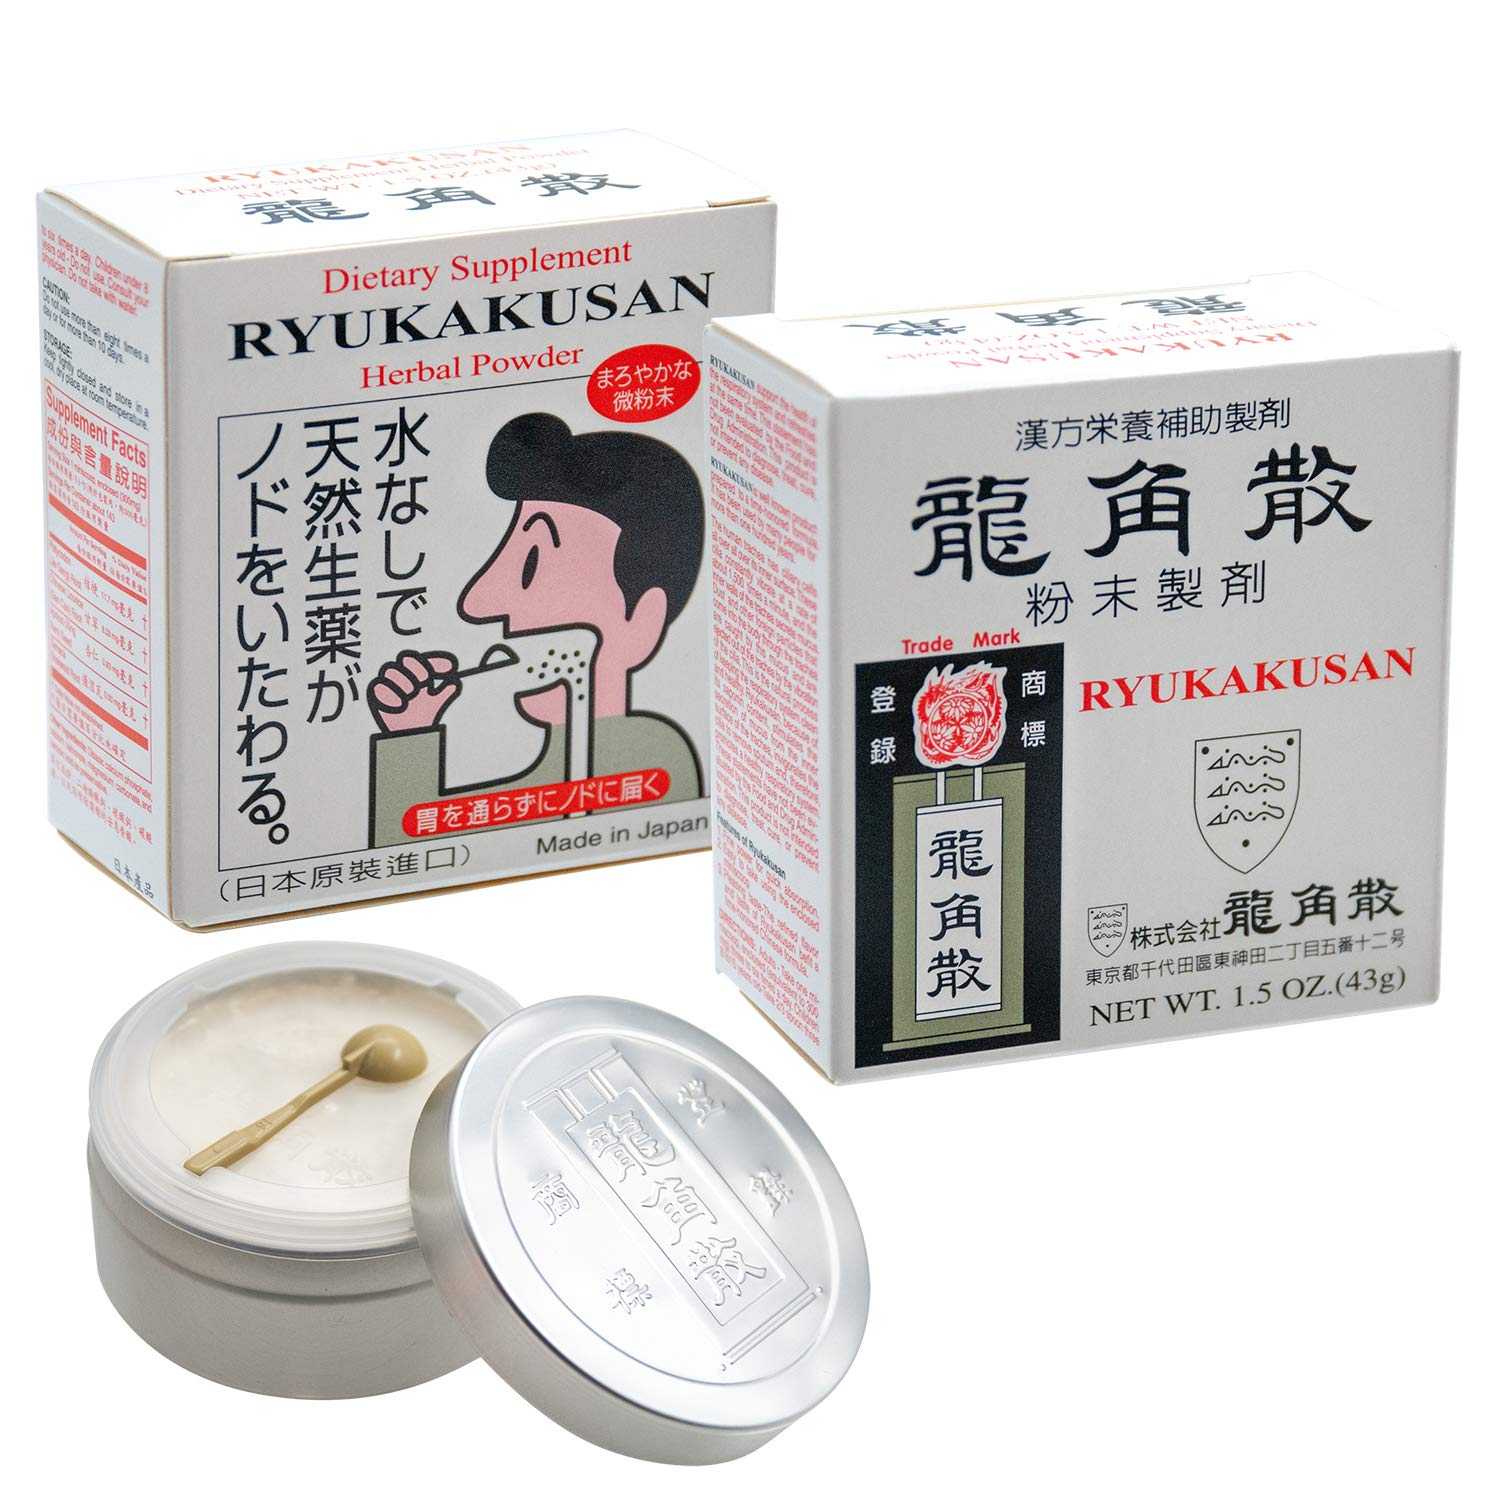 Ryukakusan Herbal Supplement 1.5oz Net Weight (43g)